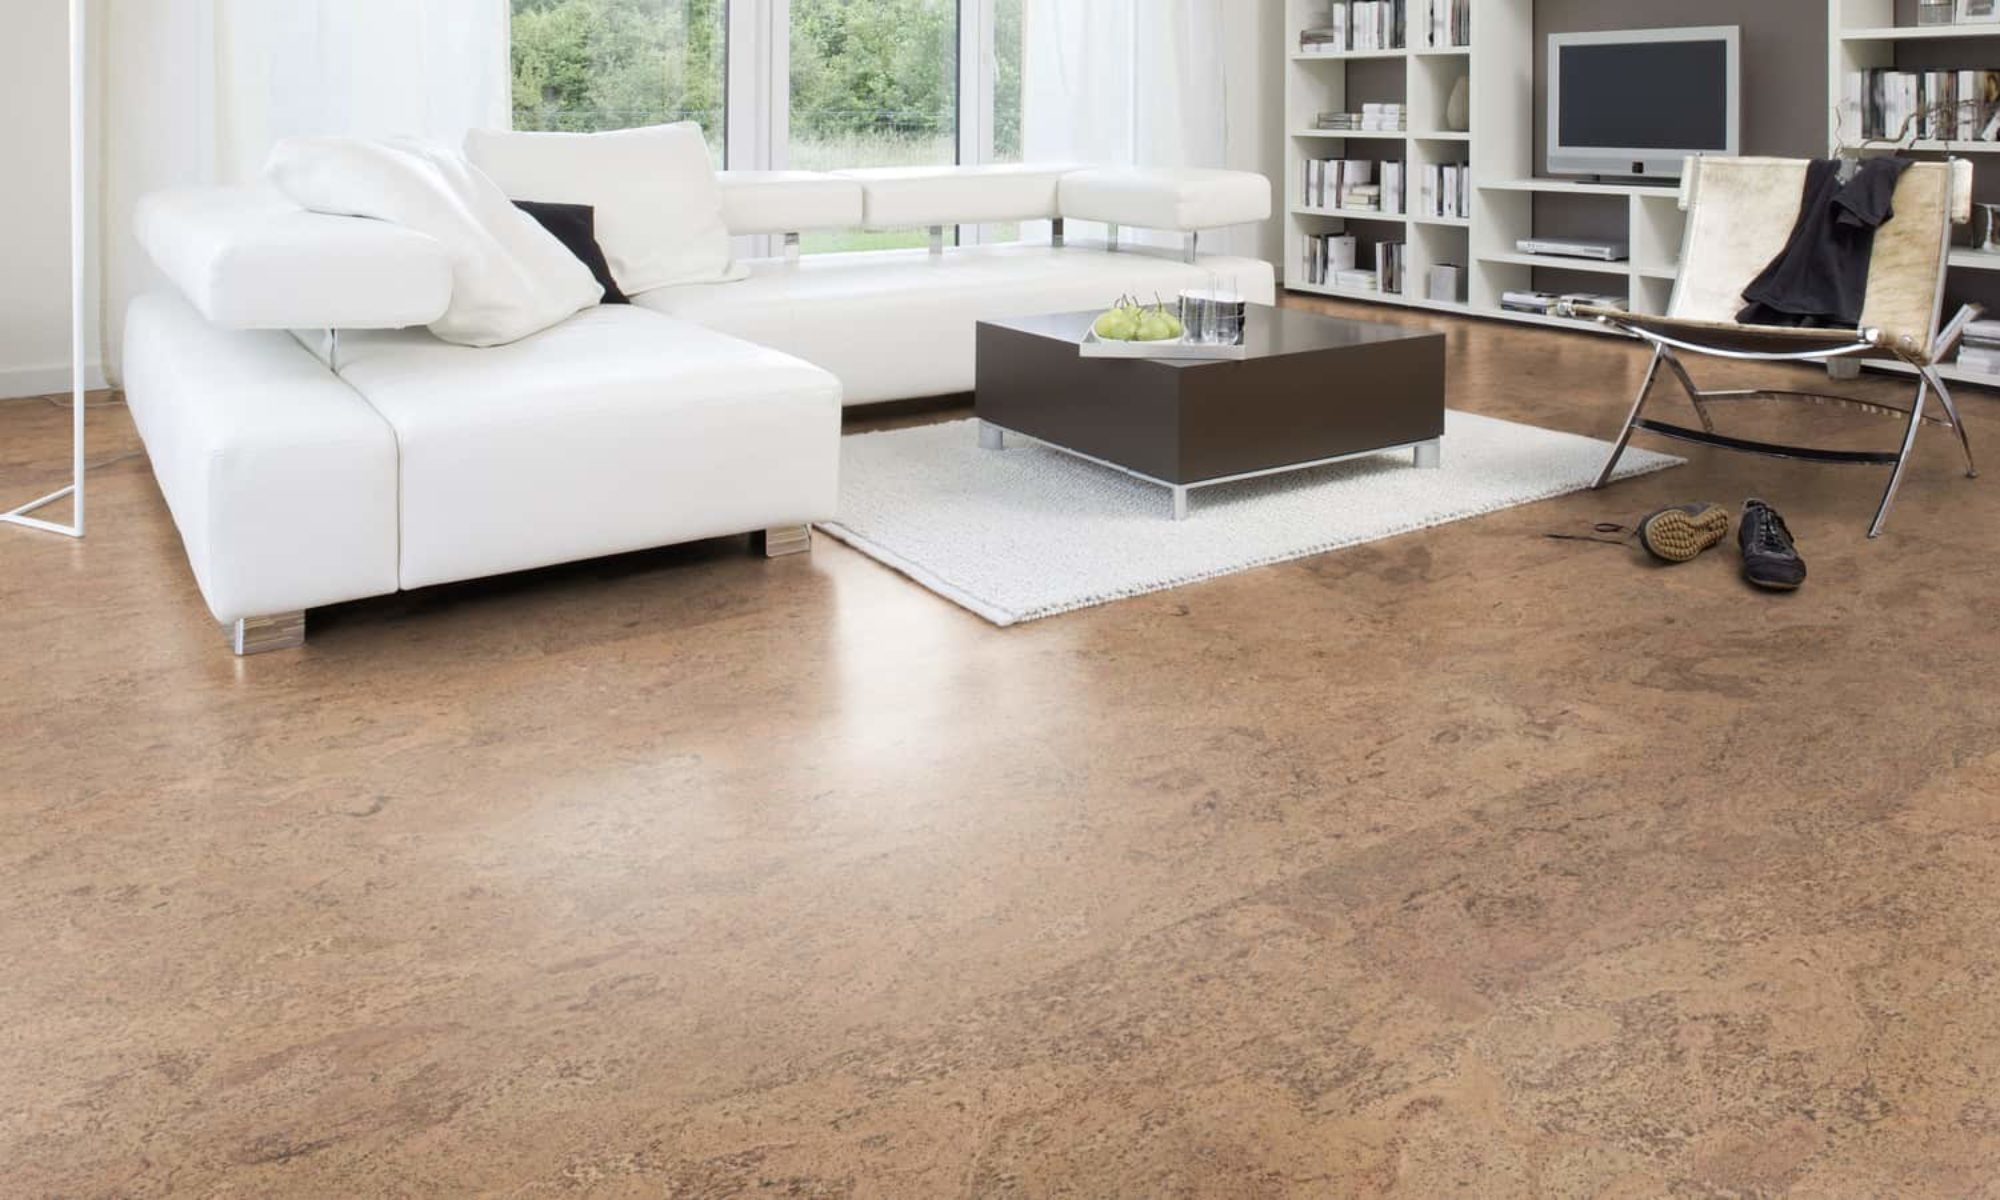 Steiger Flooring Solutions